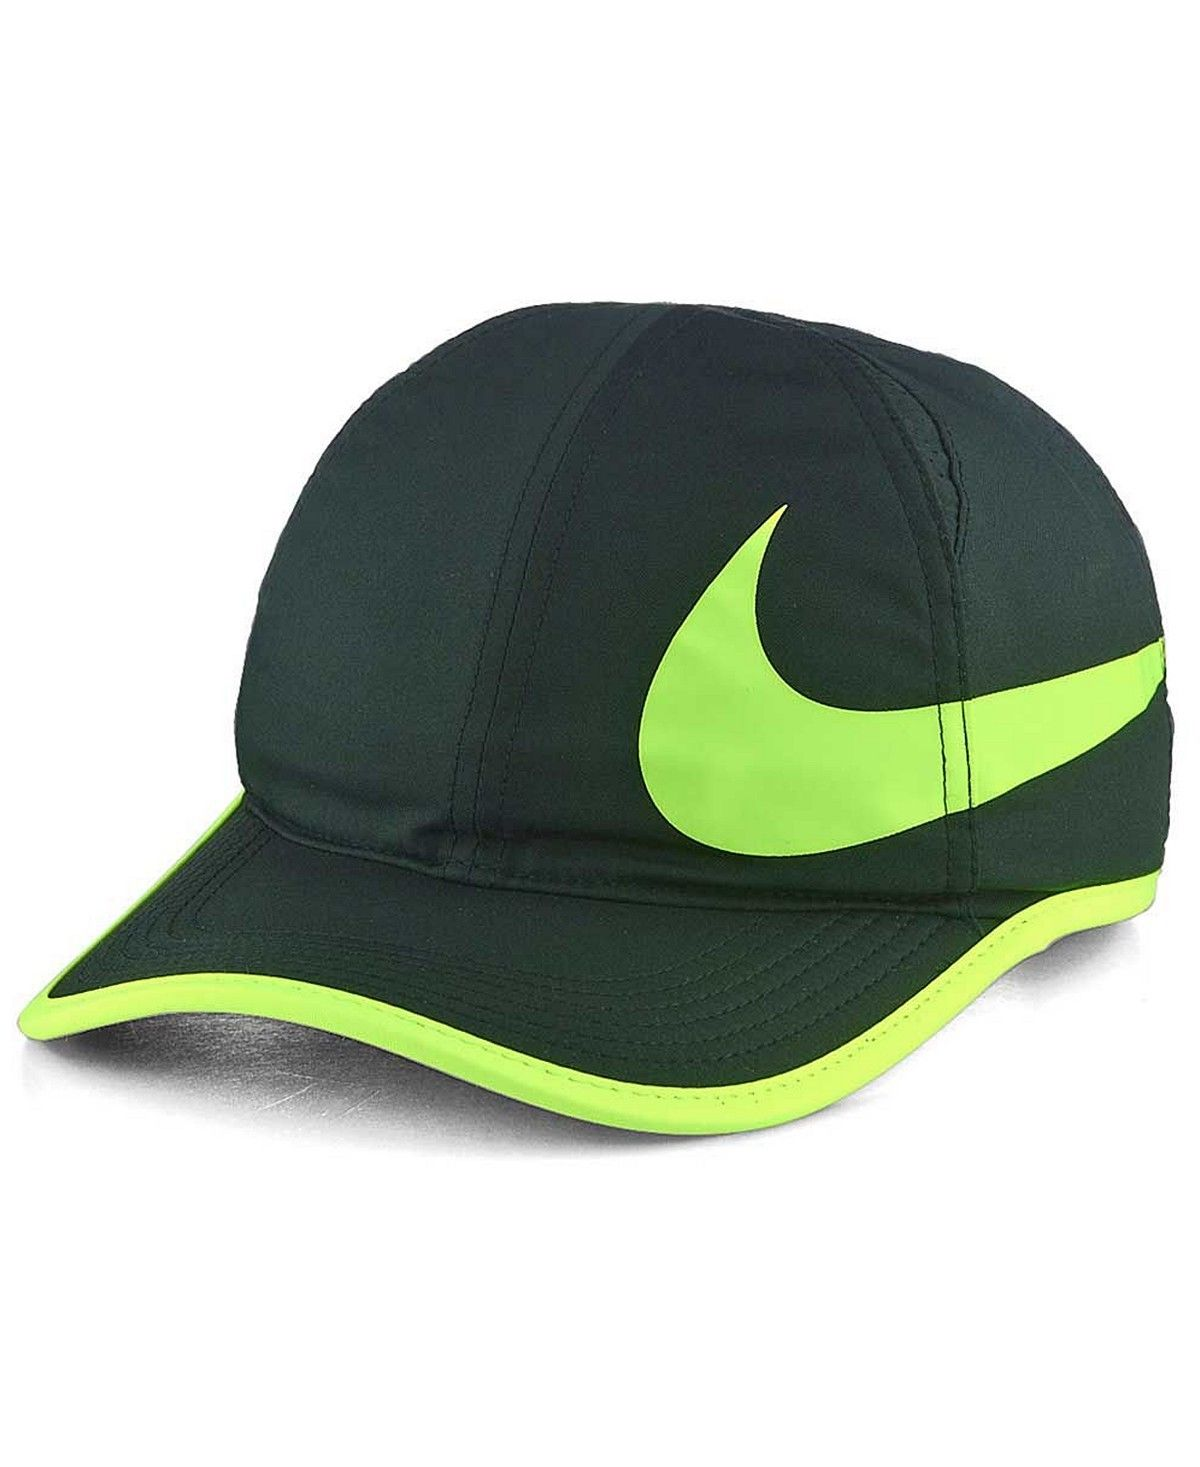 NIKE Featherlight Swoosh Cap Hat Black Green Great Gift NEW NWT ... b00dcb1168f